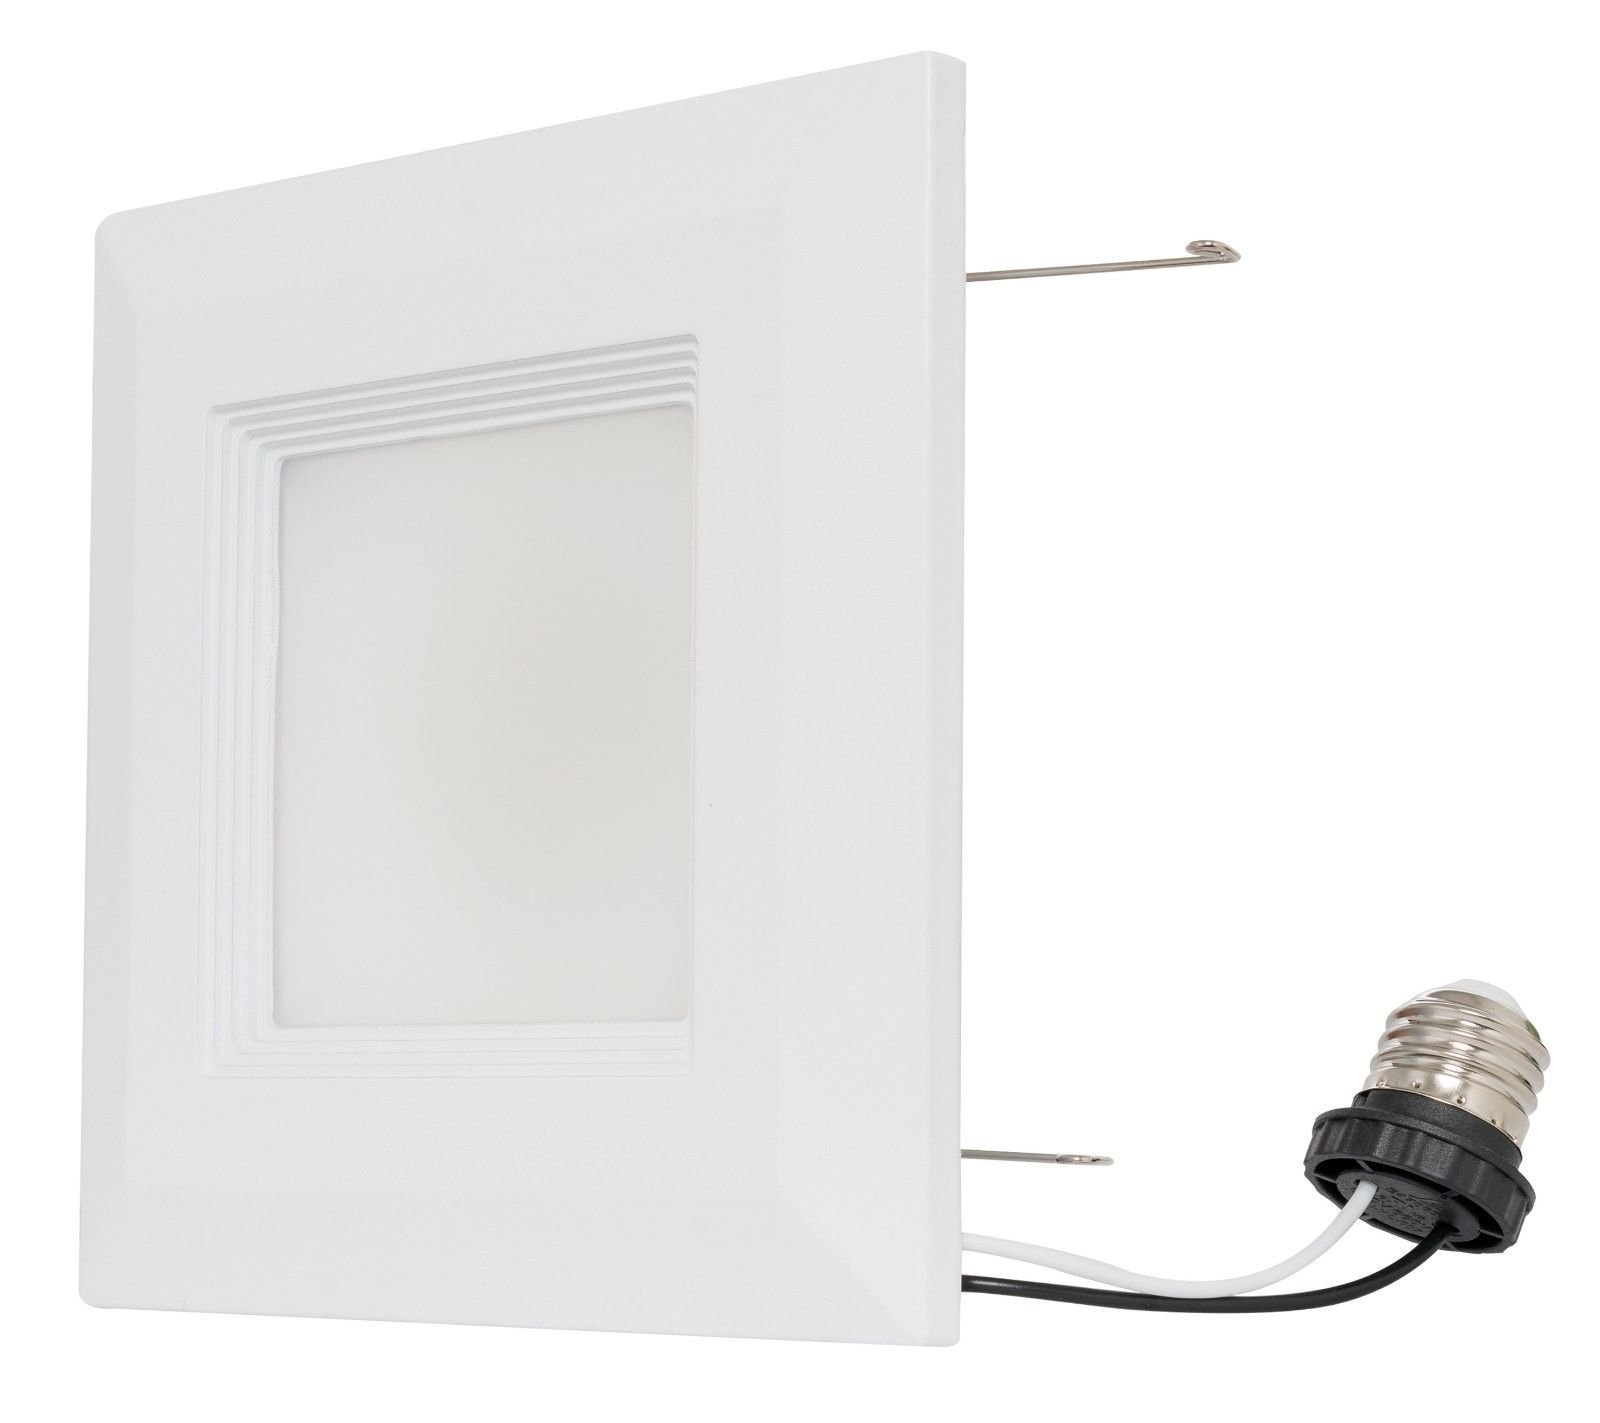 Details About Westgate Led 9w 4 Inch Square Recessed Light Retrofit Downlight With Baffle Trim